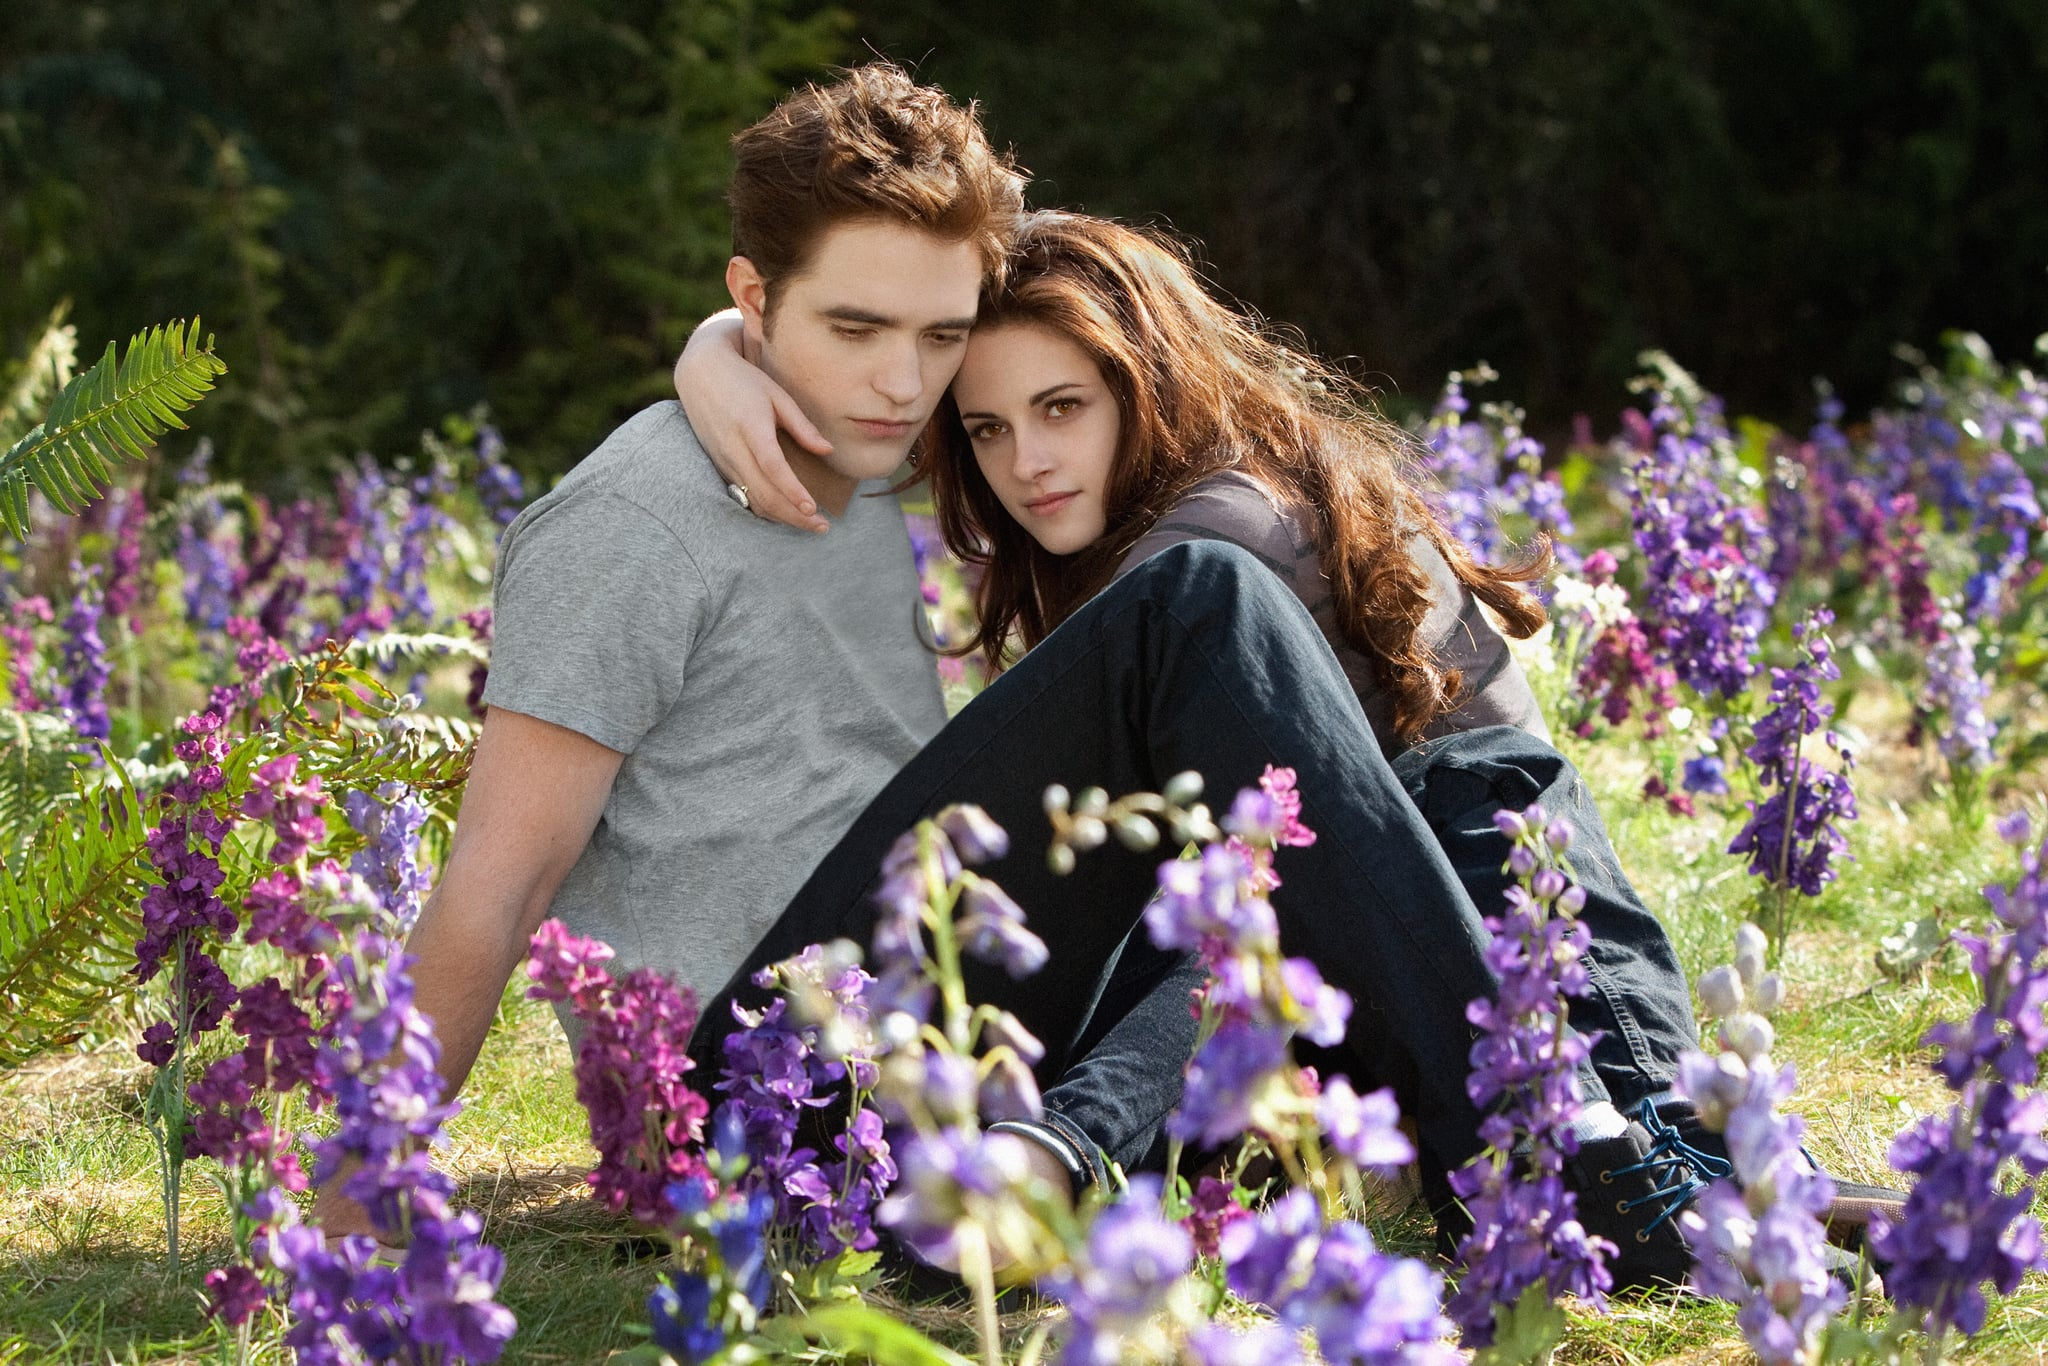 ROBERT PATTINSON and KRISTEN STEWART star in THE TWILIGHT SAGA: BREAKING DAWN-PART 2